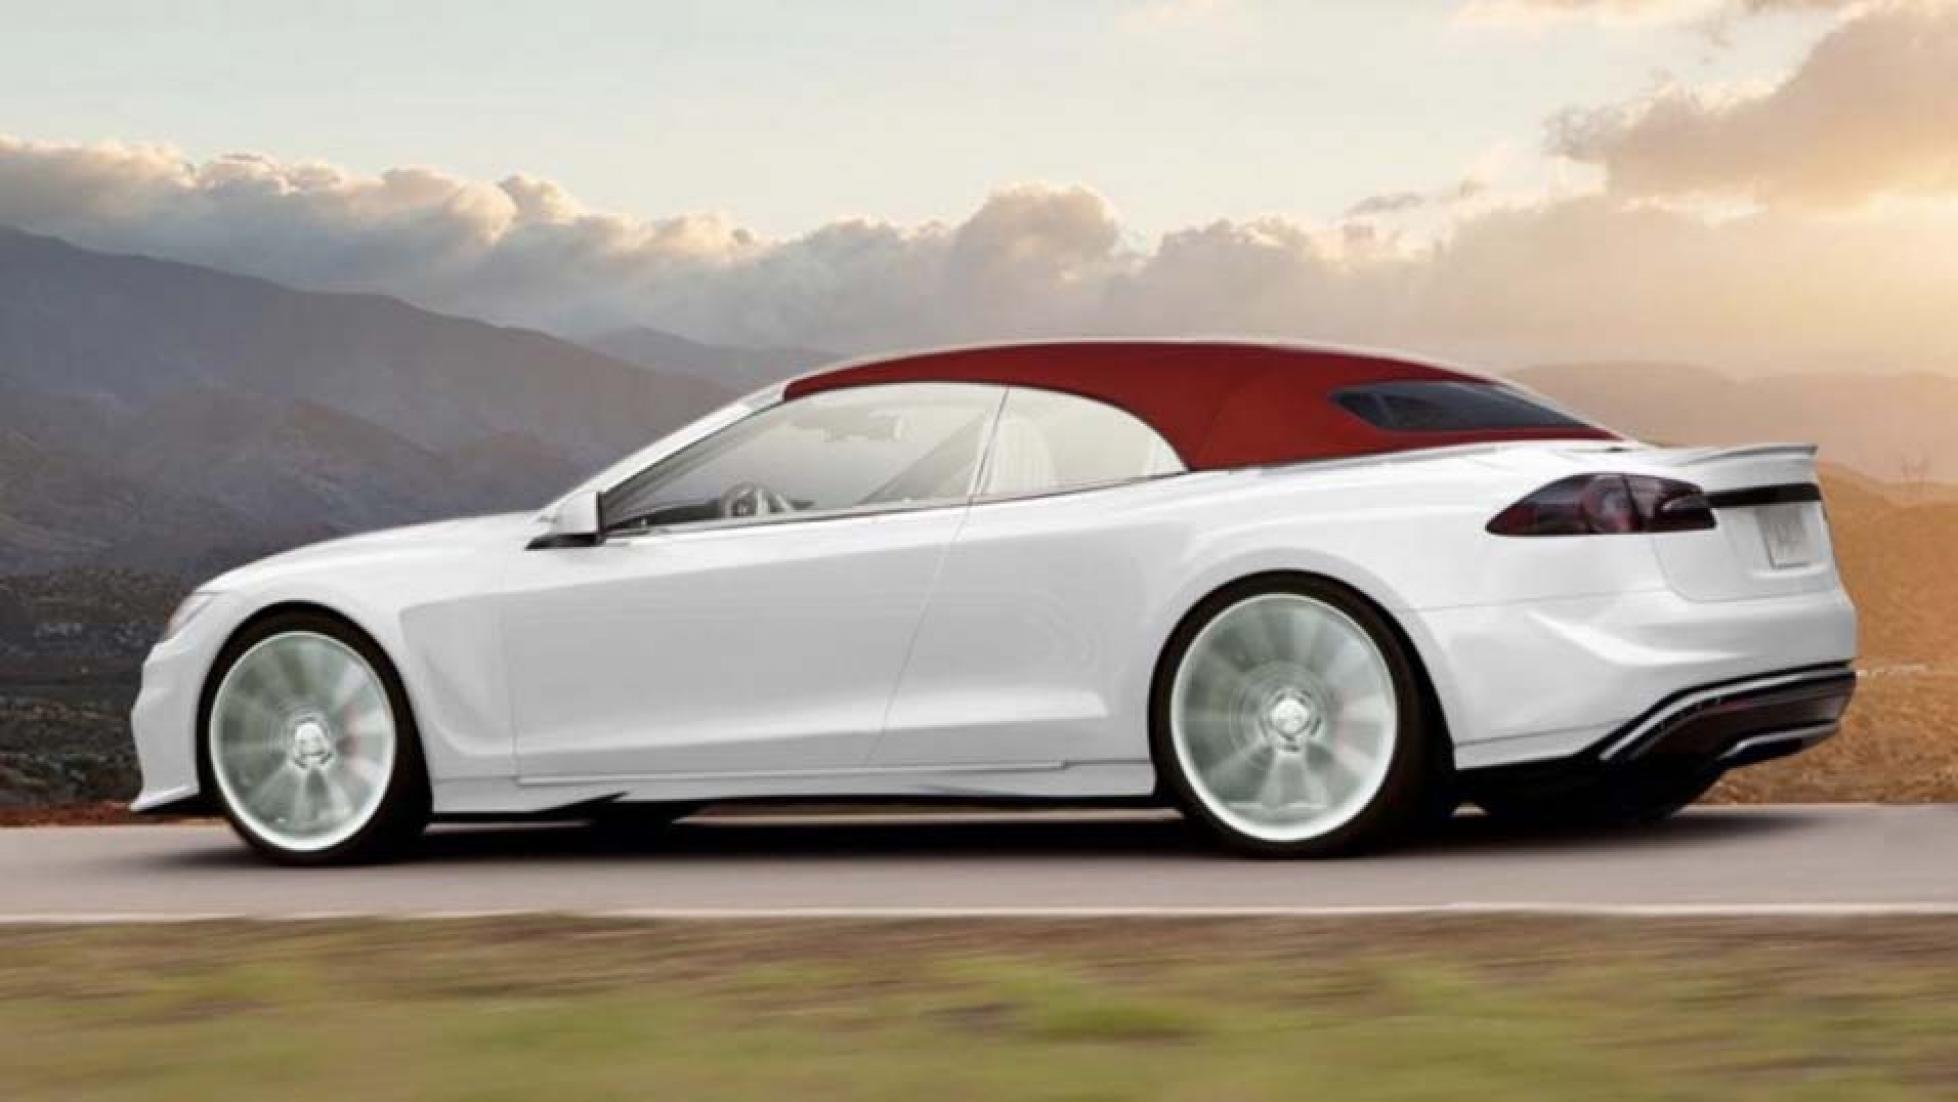 Next up from Ares Design, a Tesla Model S Roadster